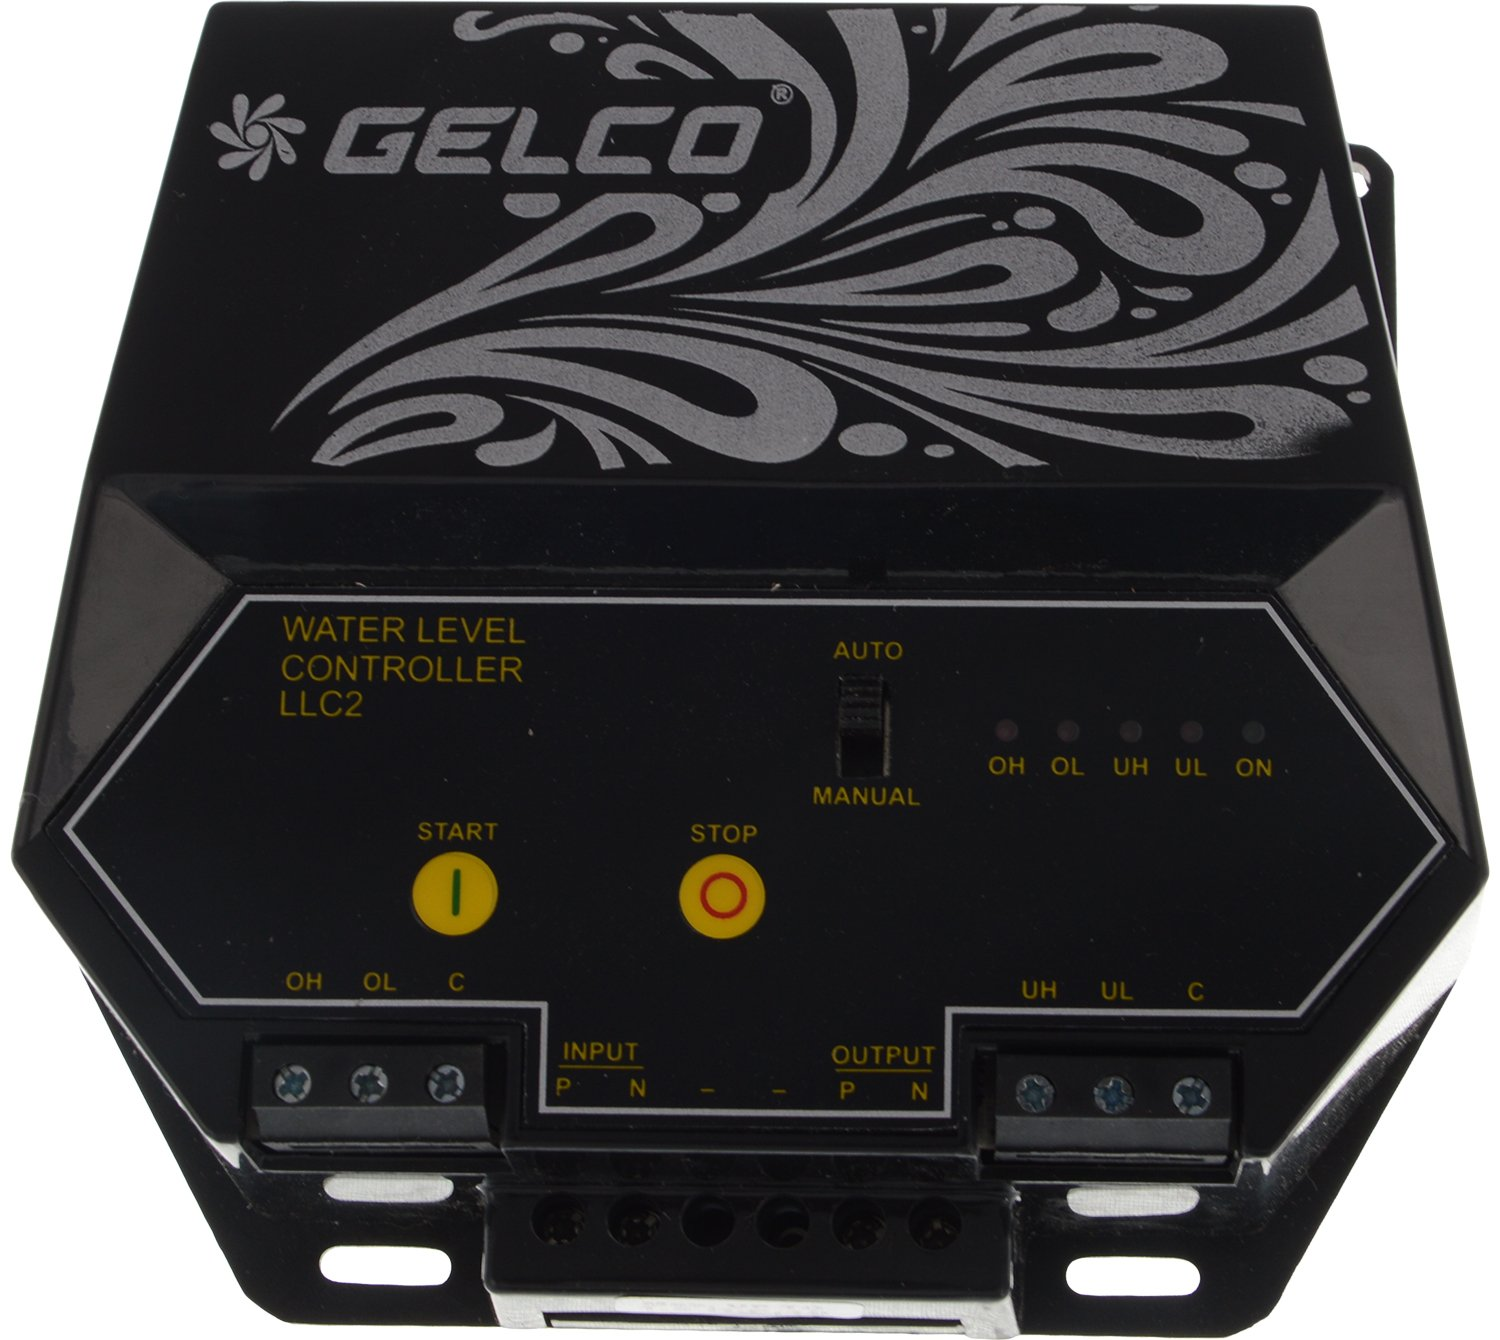 71E5b3252mL._SL1500_ buy gelco llc 2 plastic 230 volts water level controller (black gelco water level controller wiring diagram at n-0.co